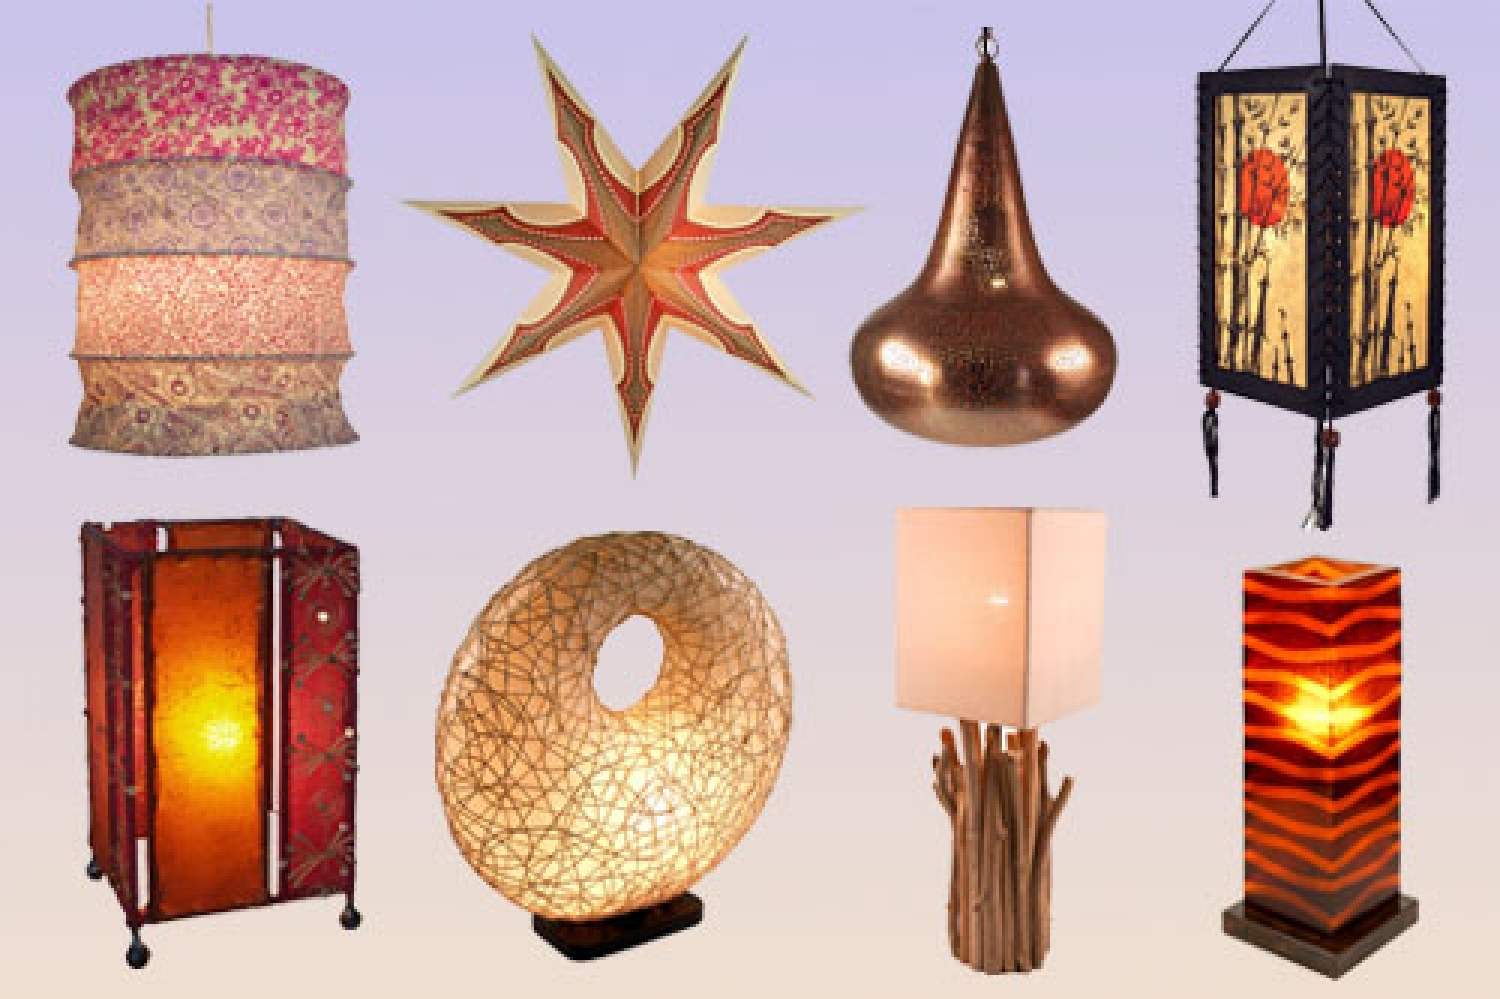 Lamps & Star Lights